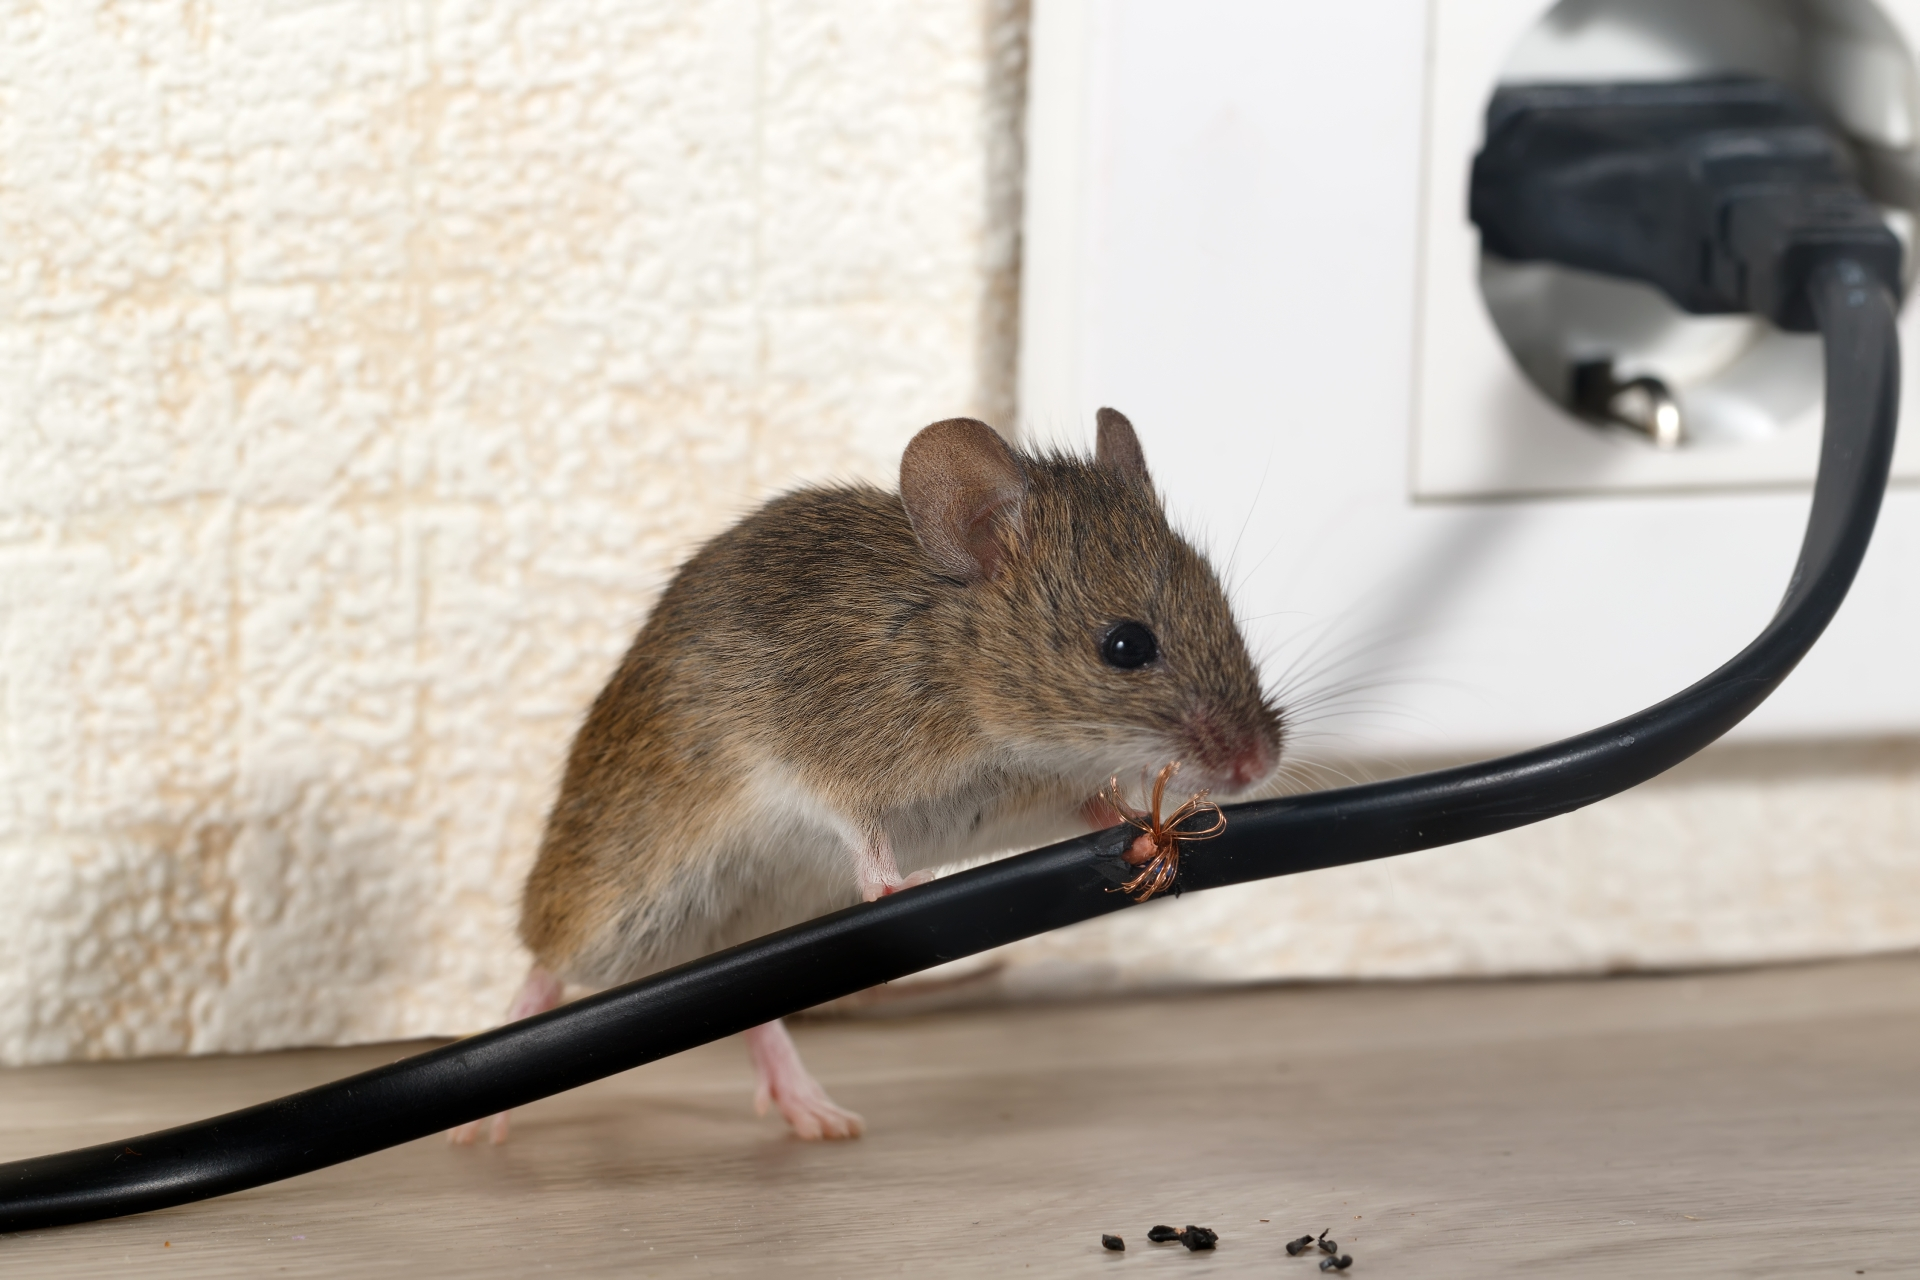 Mice Infestation, Pest Control in Shepherd's Bush, W12. Call Now 020 8166 9746